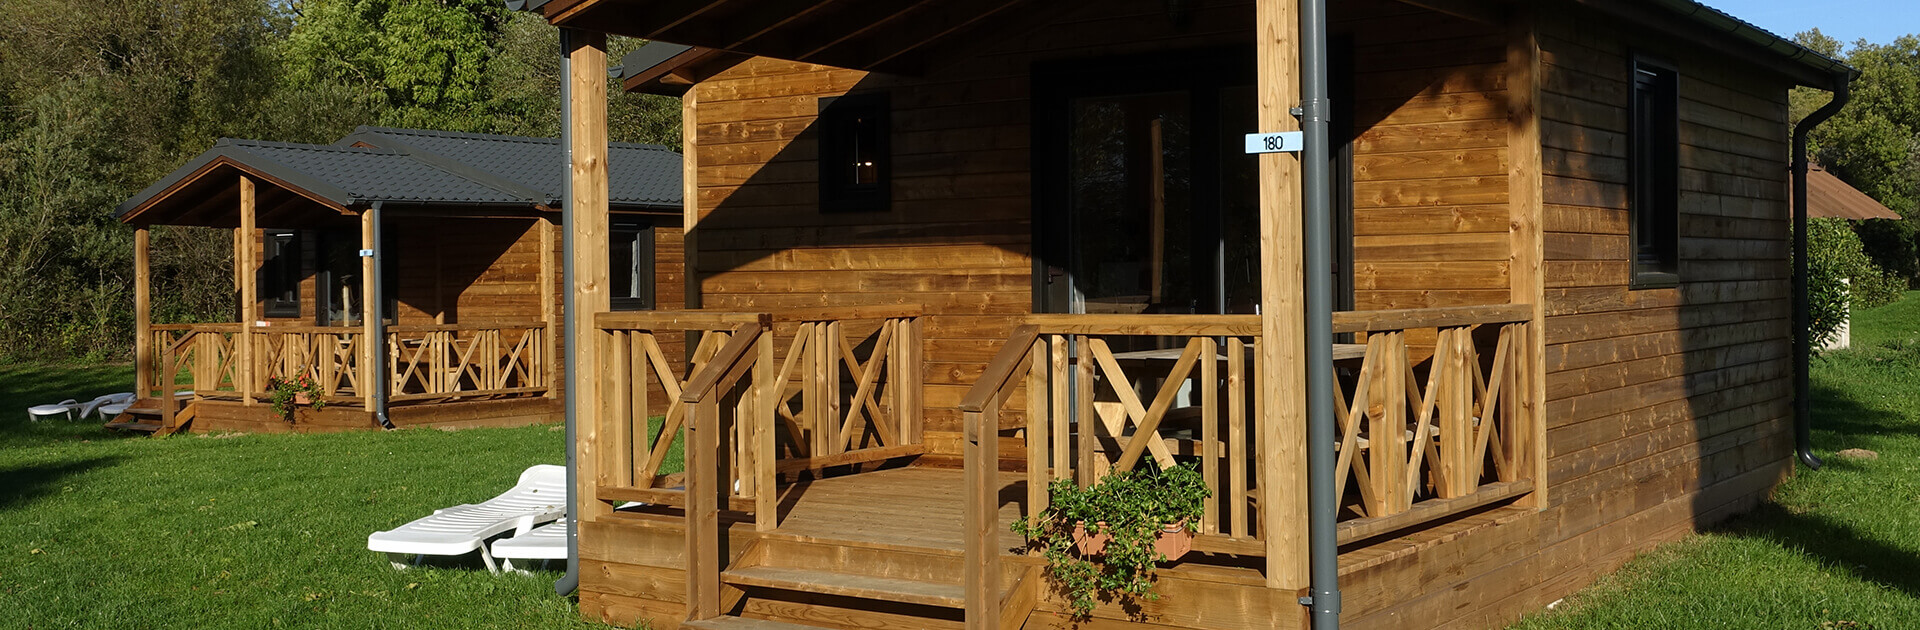 Chalet Monia In Parcey